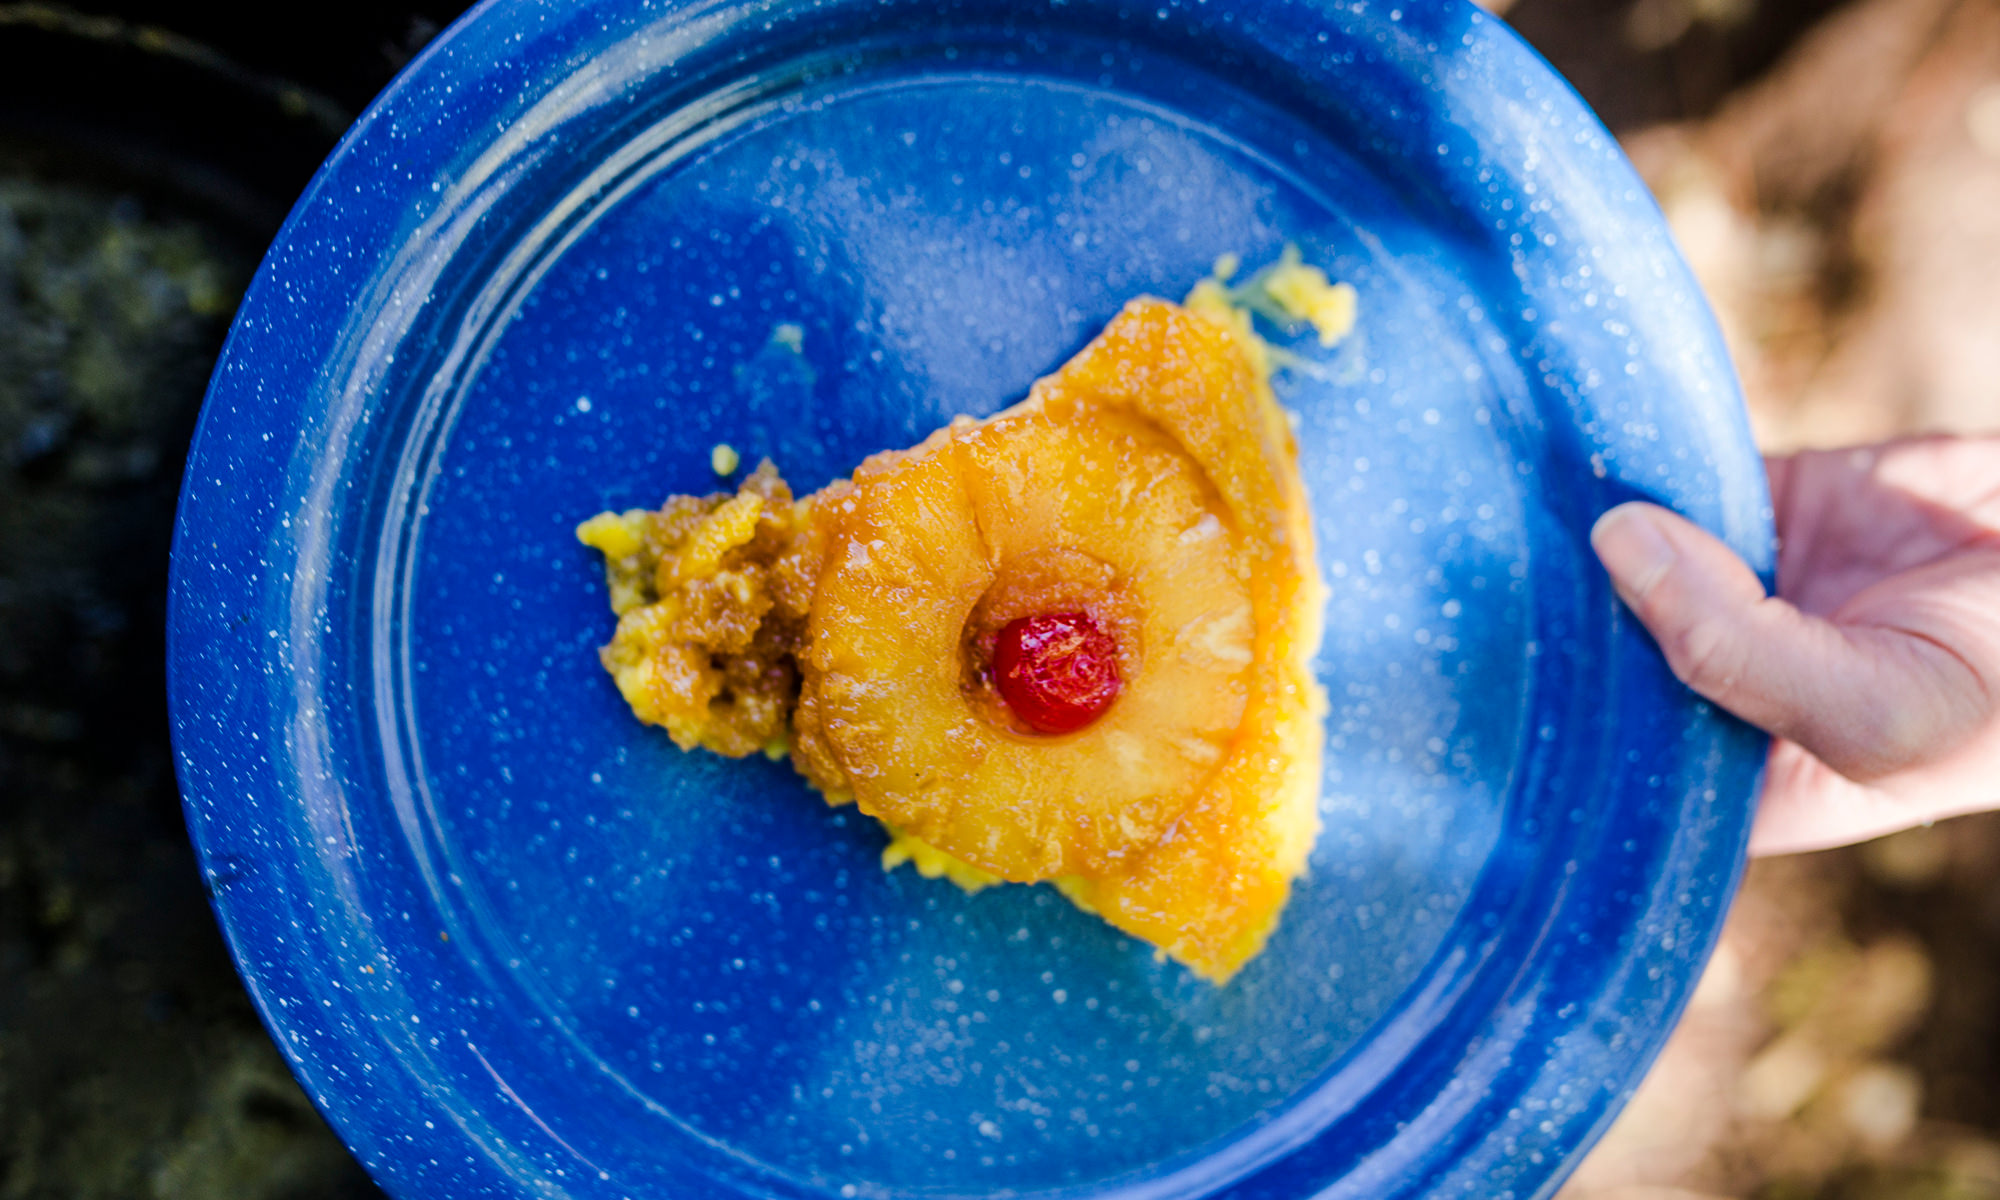 Dutch Oven Cooking: Pineapple Upside Down Cake